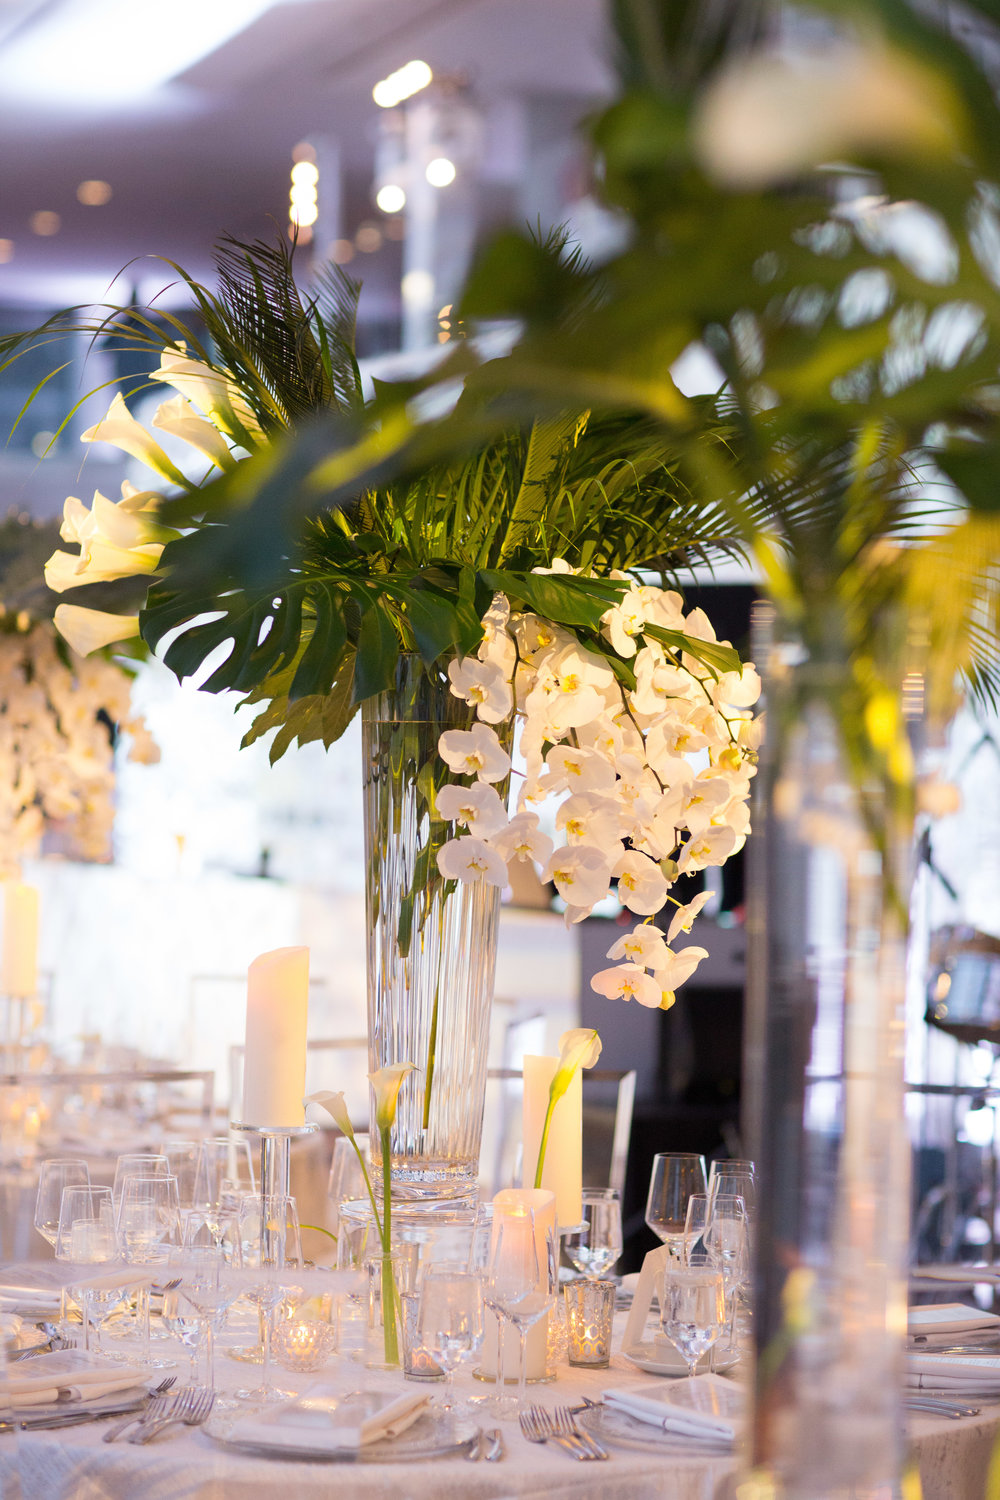 NEW-ENGLAND-WEDDING-PLANNER-BOSTON-STATE-ROOM-LUXURY-EVENT-FLOWERS-ORCHIDS-MODERN--39.jpg